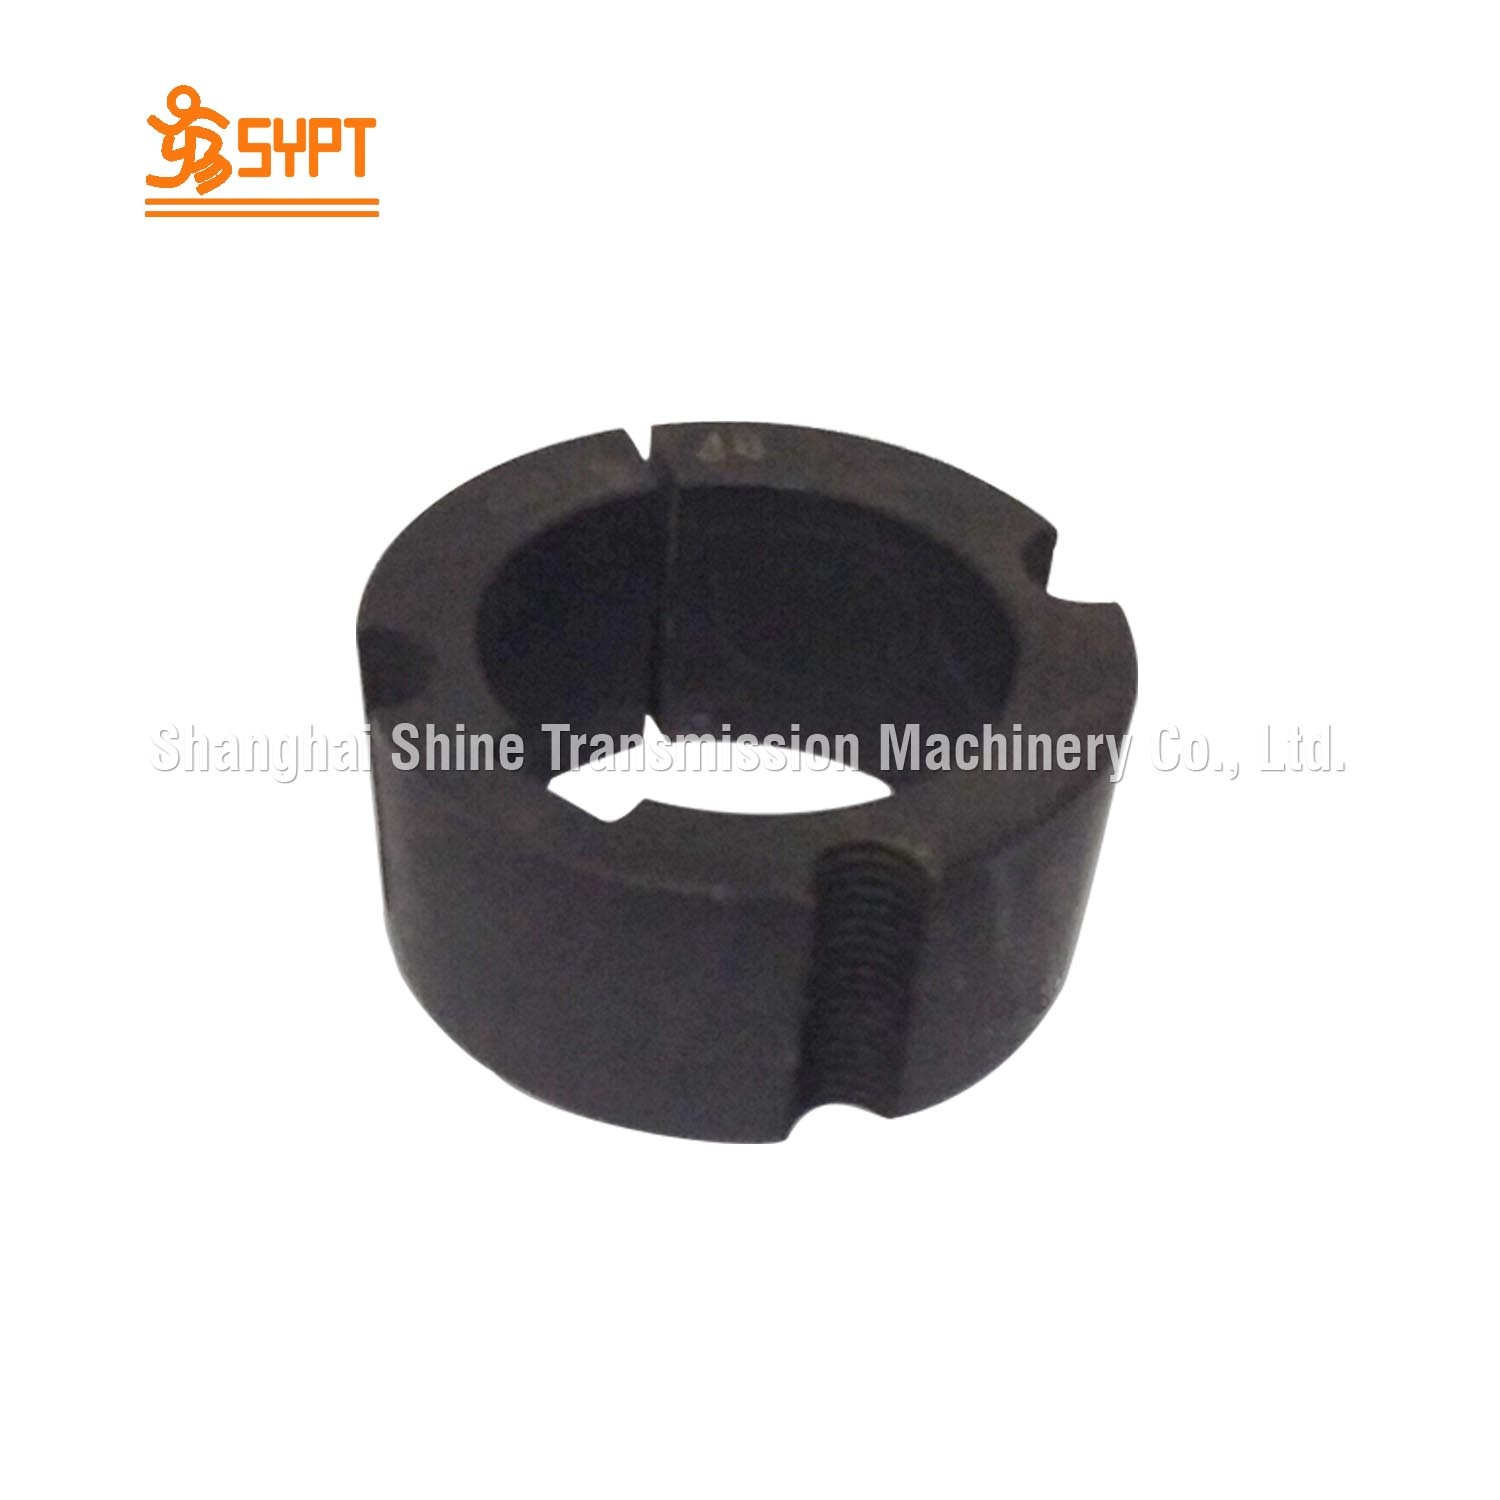 Featured Taper Lock Bushing for Industrial Equipment